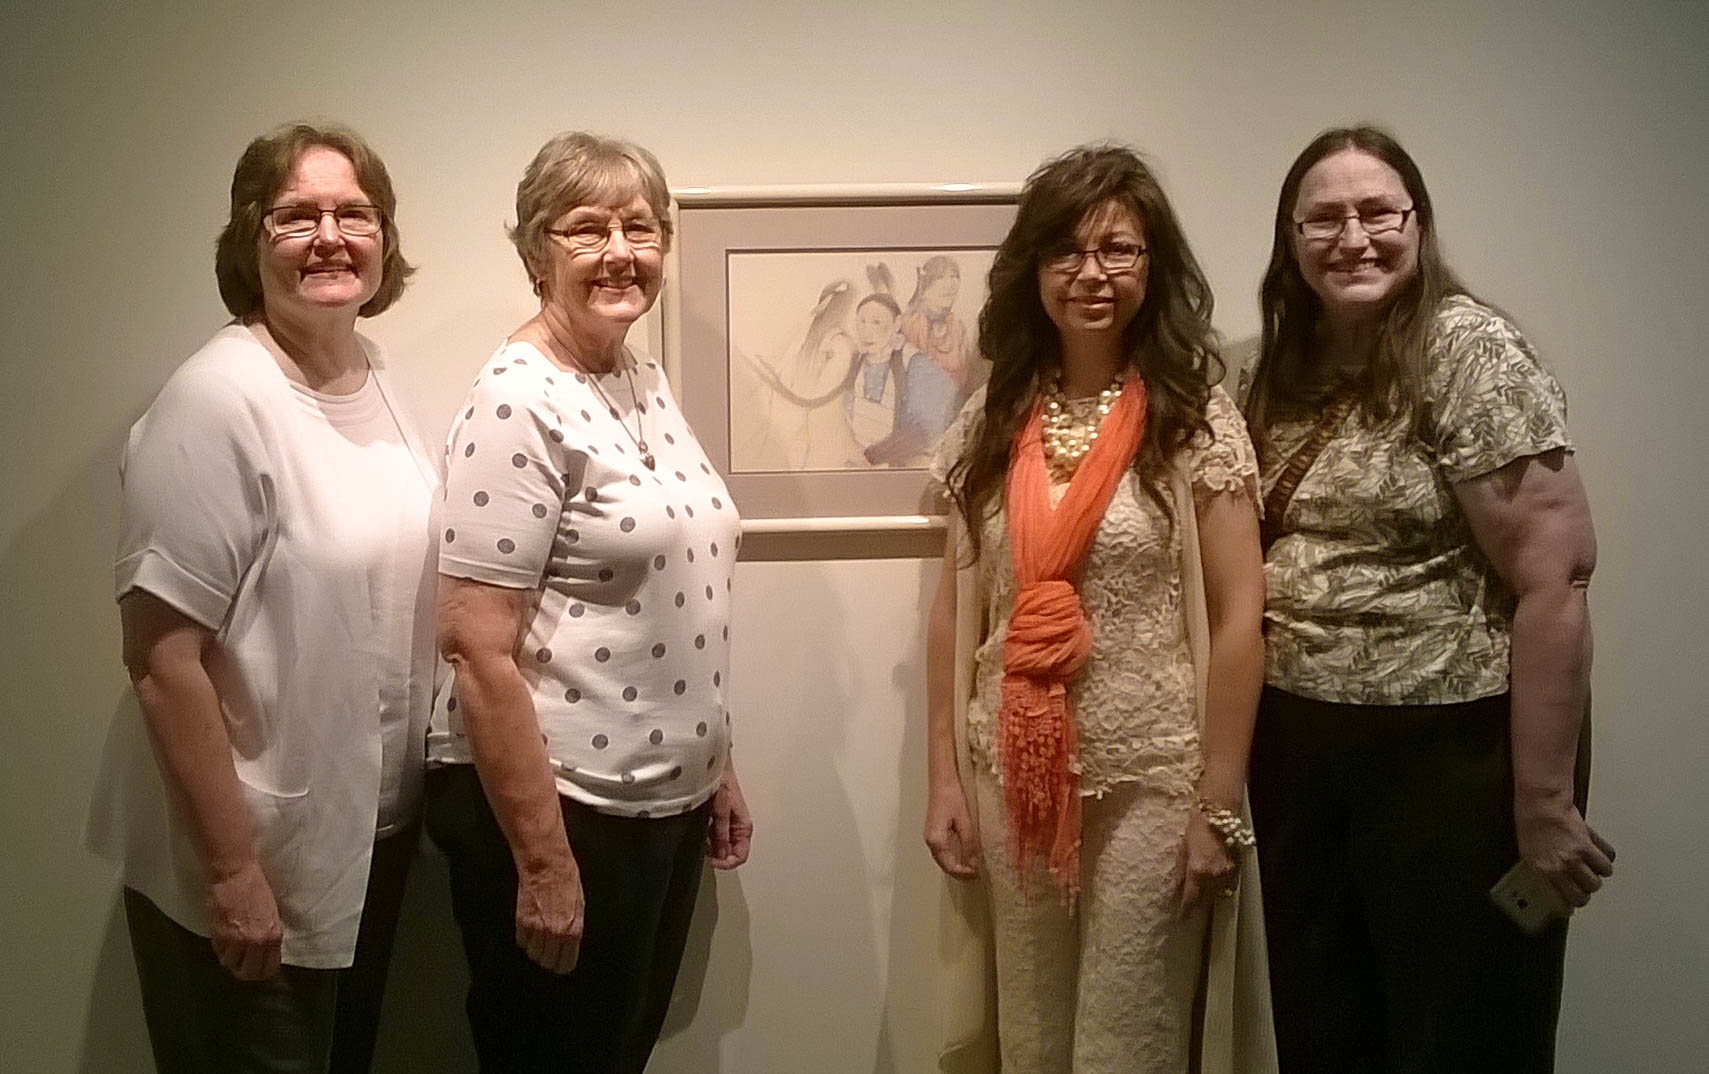 Sisters Dianna Whitehurt, Elizabeth Griffin and Elaine Harman donated an untitled art piece to the Connors State College Ken Ogden Family Museum at the Native American Success and Cultural Center on the Warner Campus. They are pictured with Rebecca Clovis (third from left), Native American Advisor and Cherokee Promise Coordinator, who was instrumental in procuring the art.